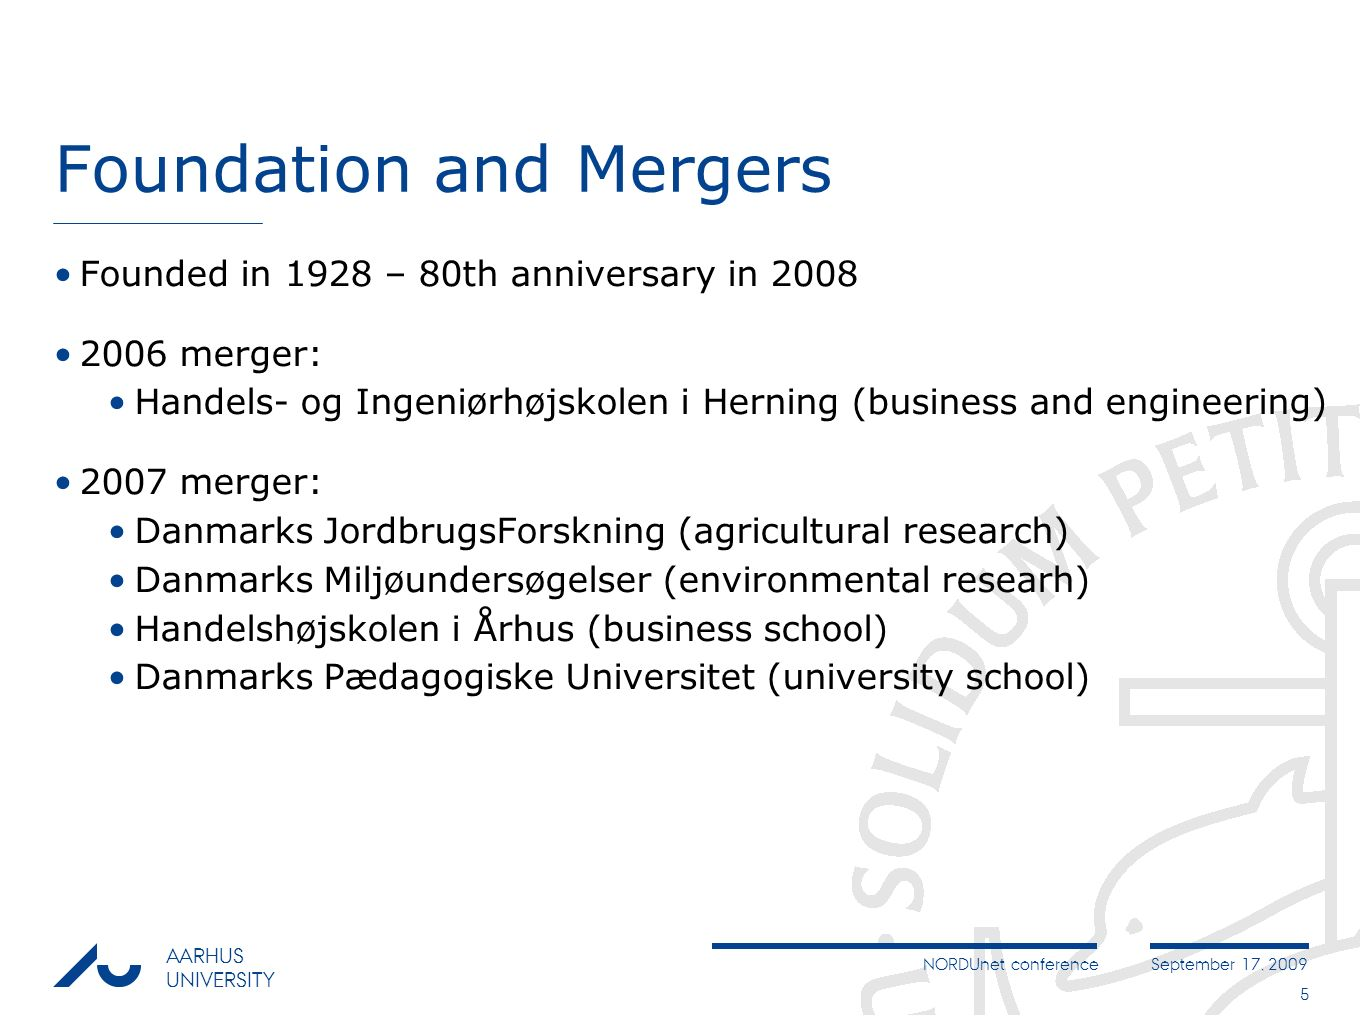 NORDUnet conferenceSeptember 17, 2009 AARHUS UNIVERSITY 5 Foundation and Mergers Founded in 1928 – 80th anniversary in 2008 2006 merger: Handels- og Ingeniørhøjskolen i Herning (business and engineering) 2007 merger: Danmarks JordbrugsForskning (agricultural research) Danmarks Miljøundersøgelser (environmental researh) Handelshøjskolen i Århus (business school) Danmarks Pædagogiske Universitet (university school)